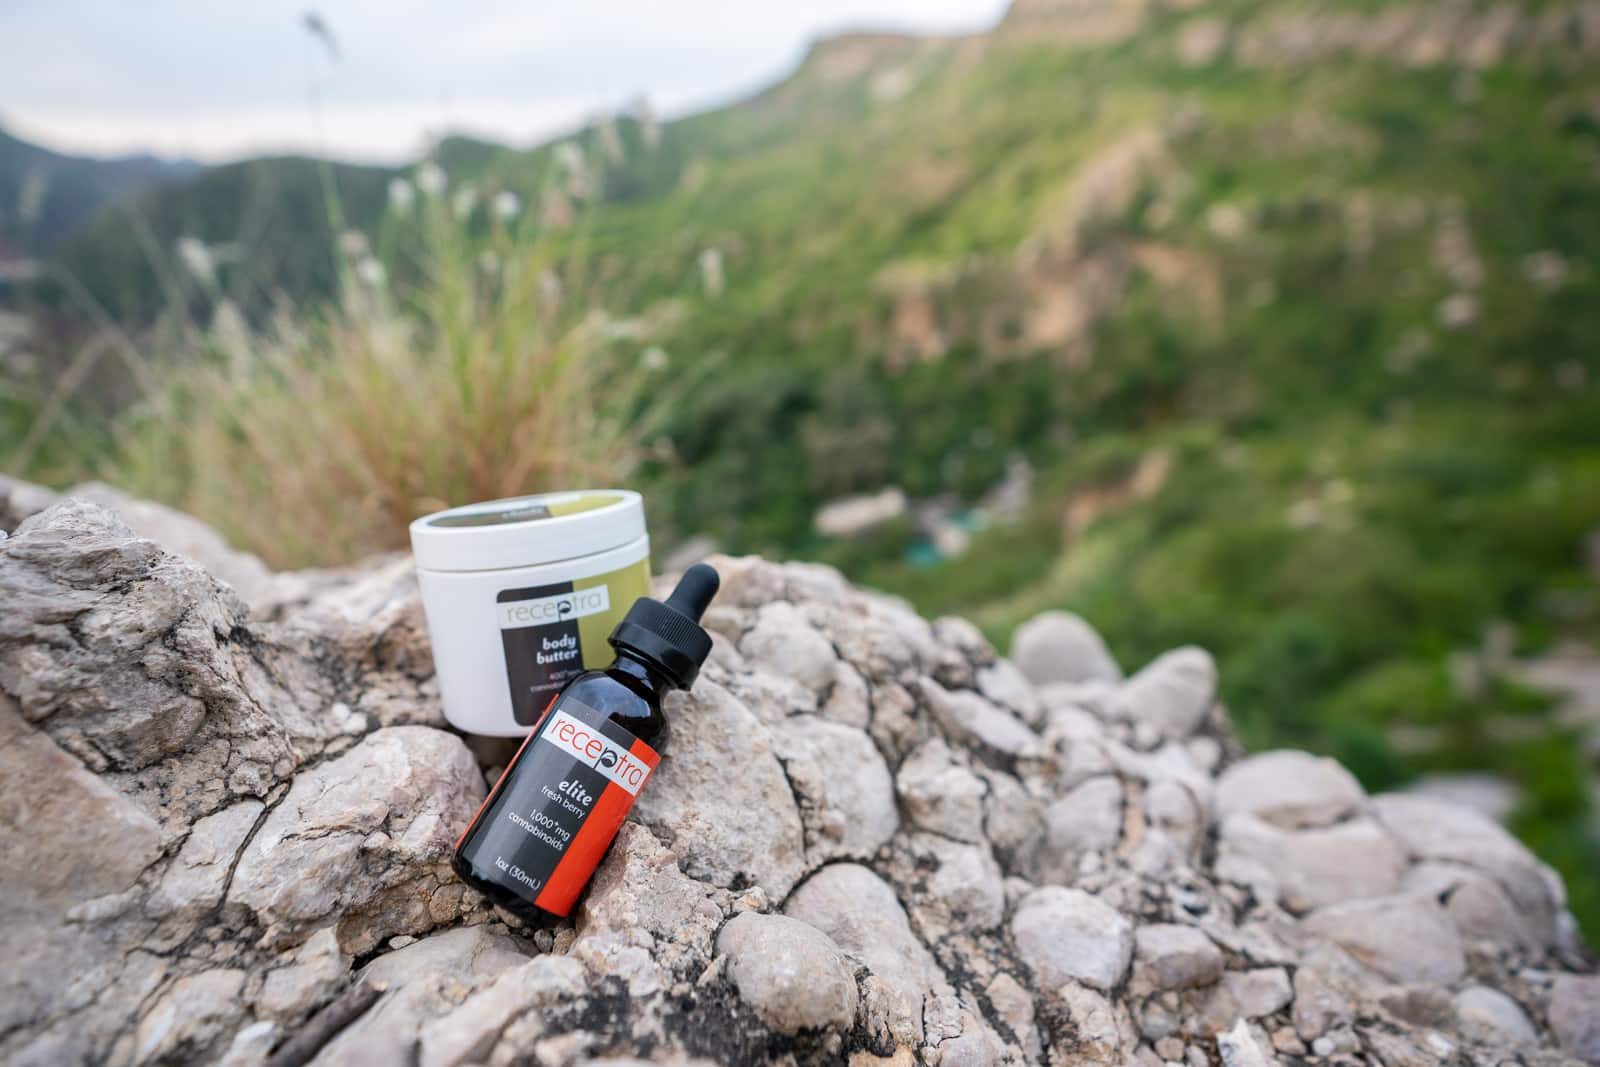 Review of Receptra Naturals Active CBD oil - Lost With Purpose travel blog